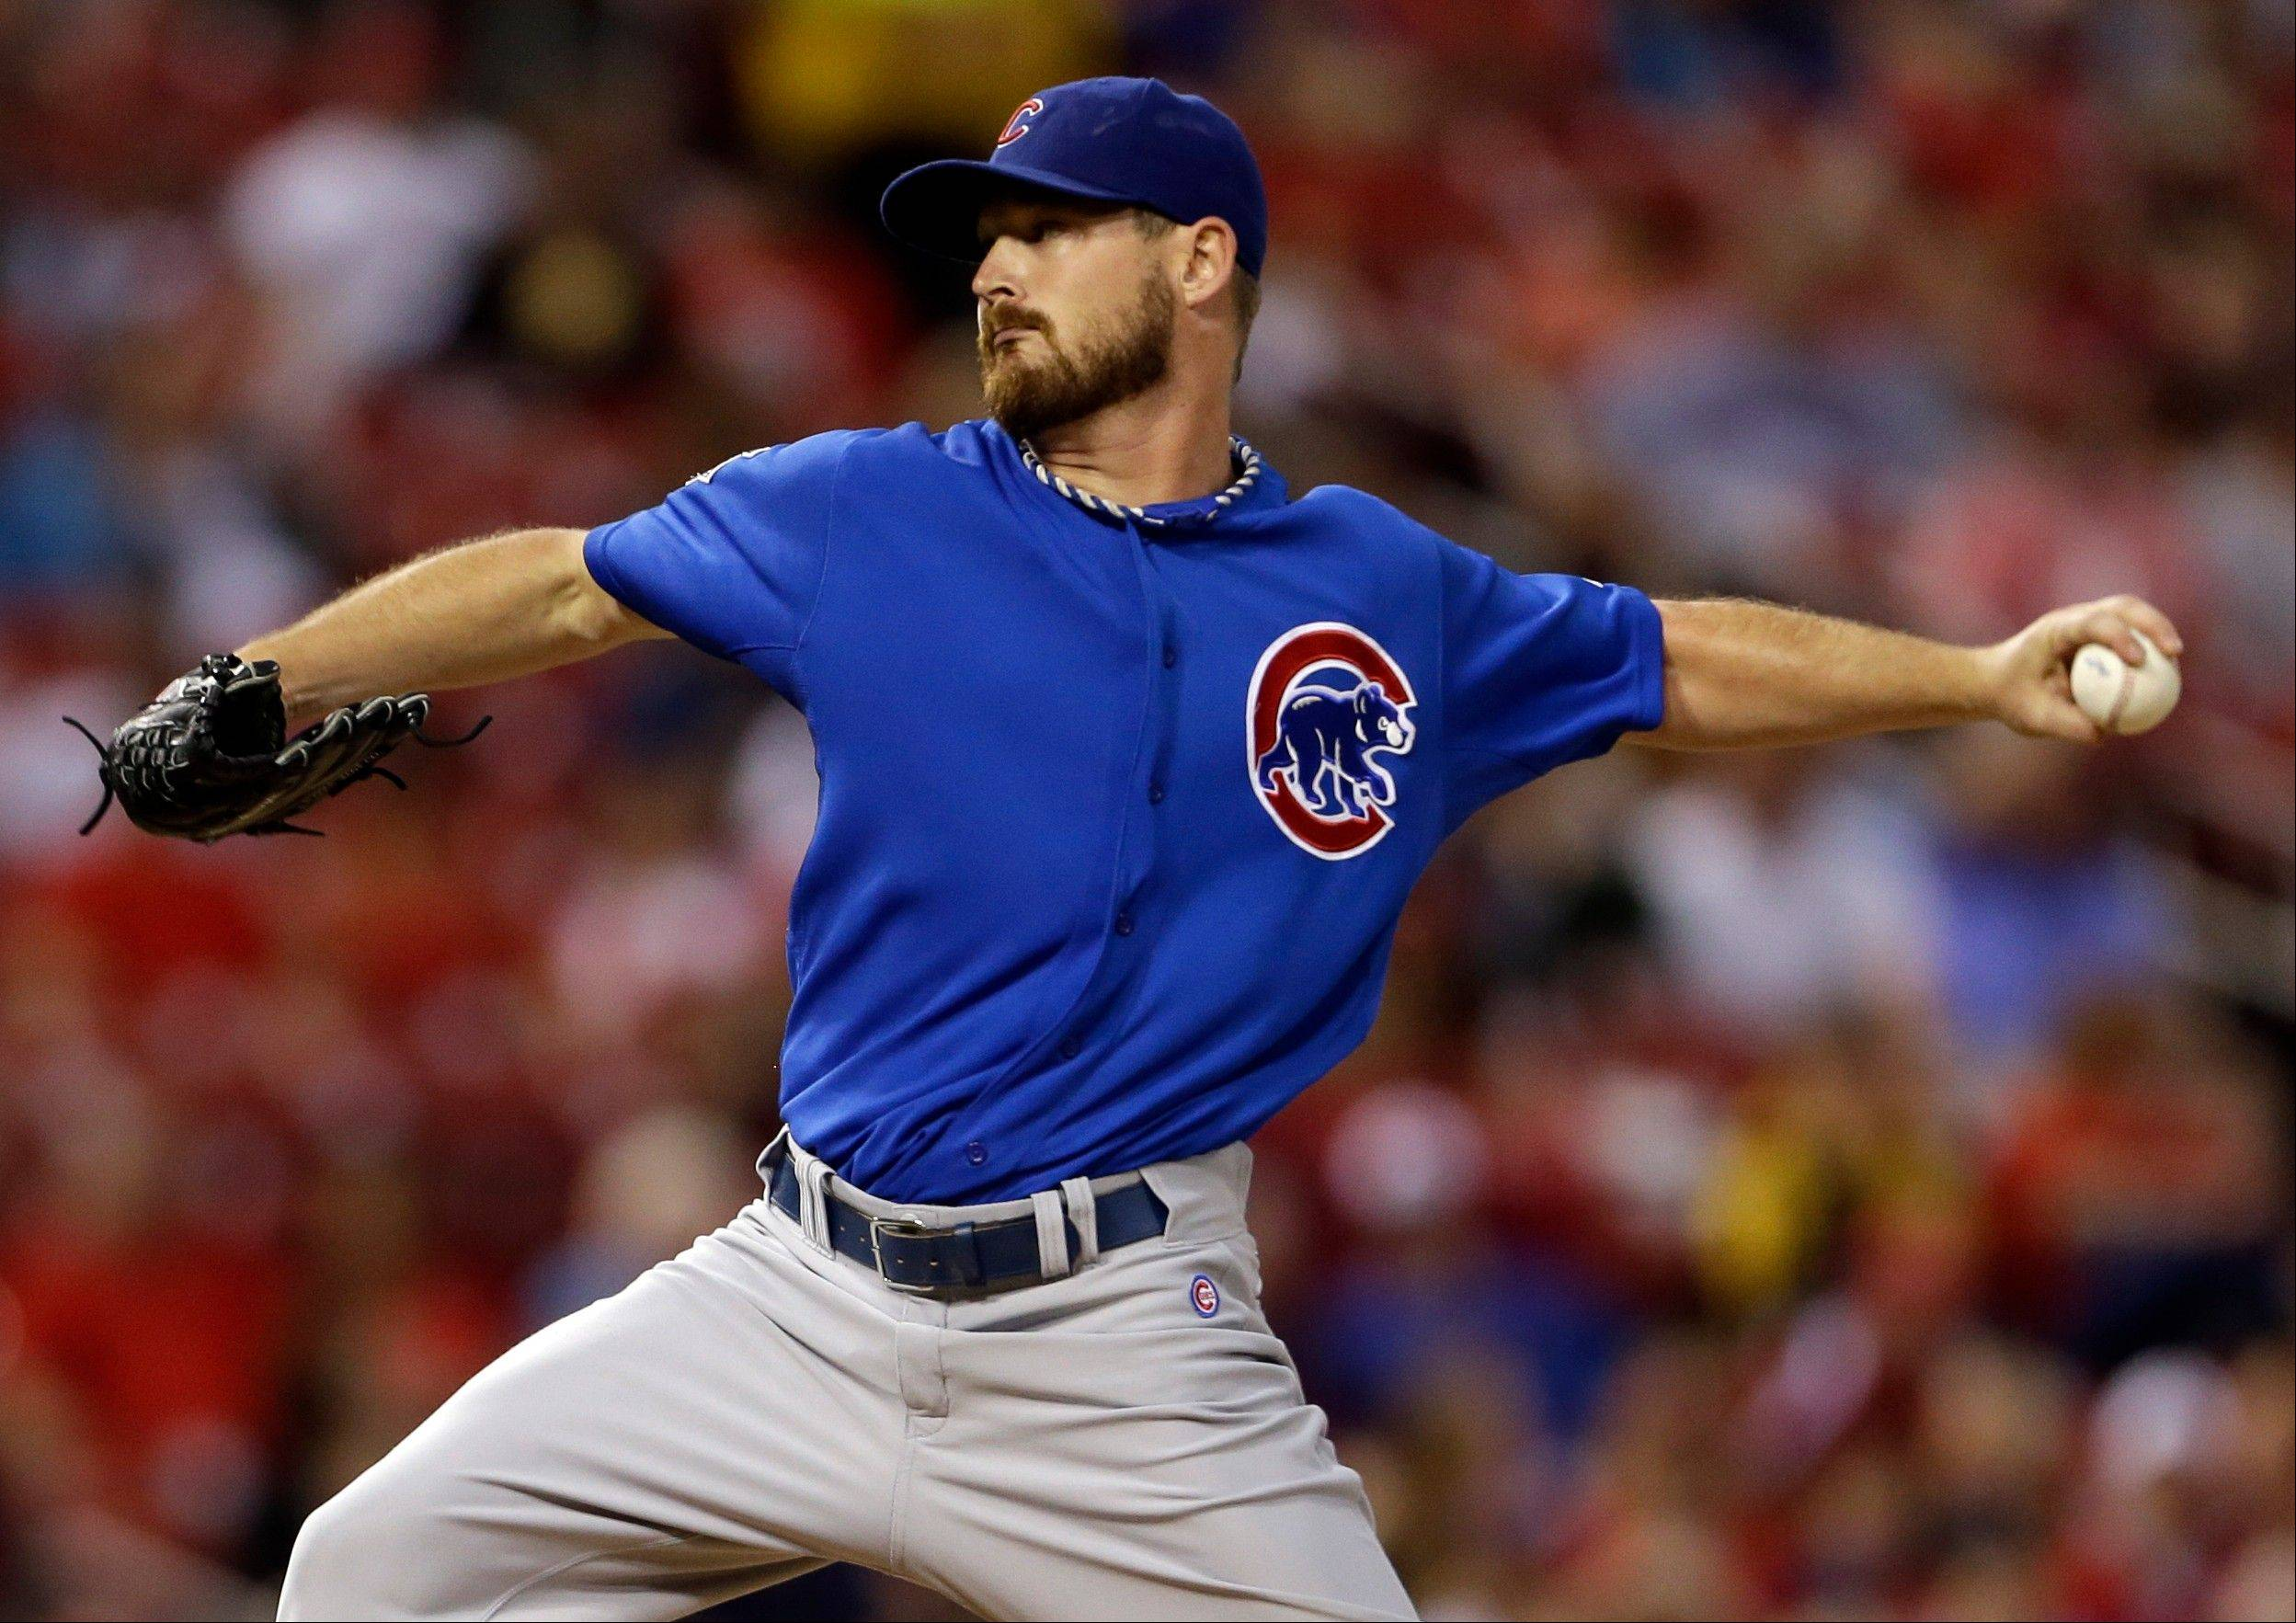 Cubs starting pitcher Travis Wood has a 2.70 ERA in 20 innings of work in his last three starts � all losses.